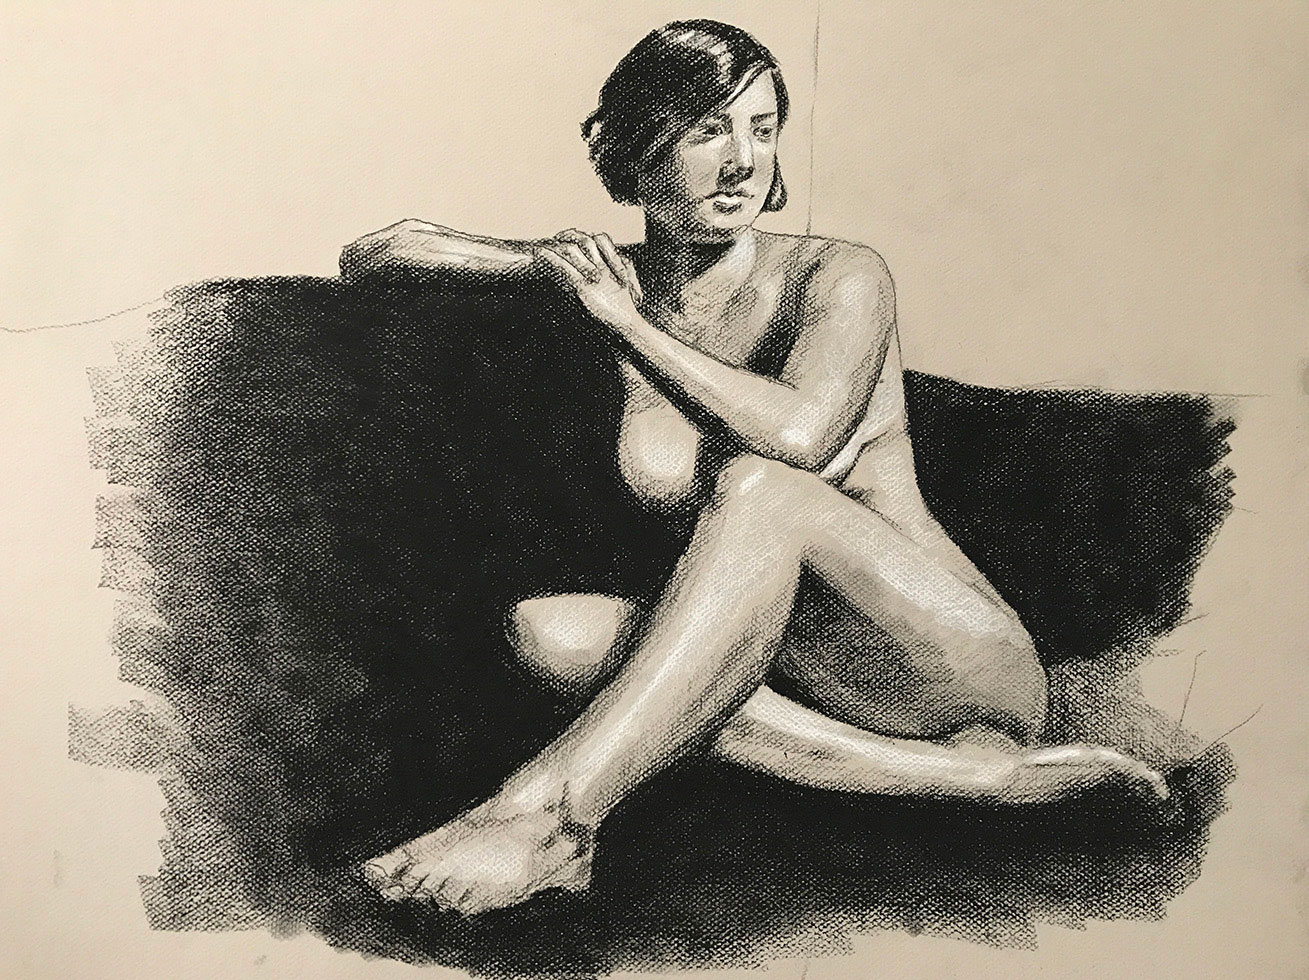 Female Nude Figure Study - Final